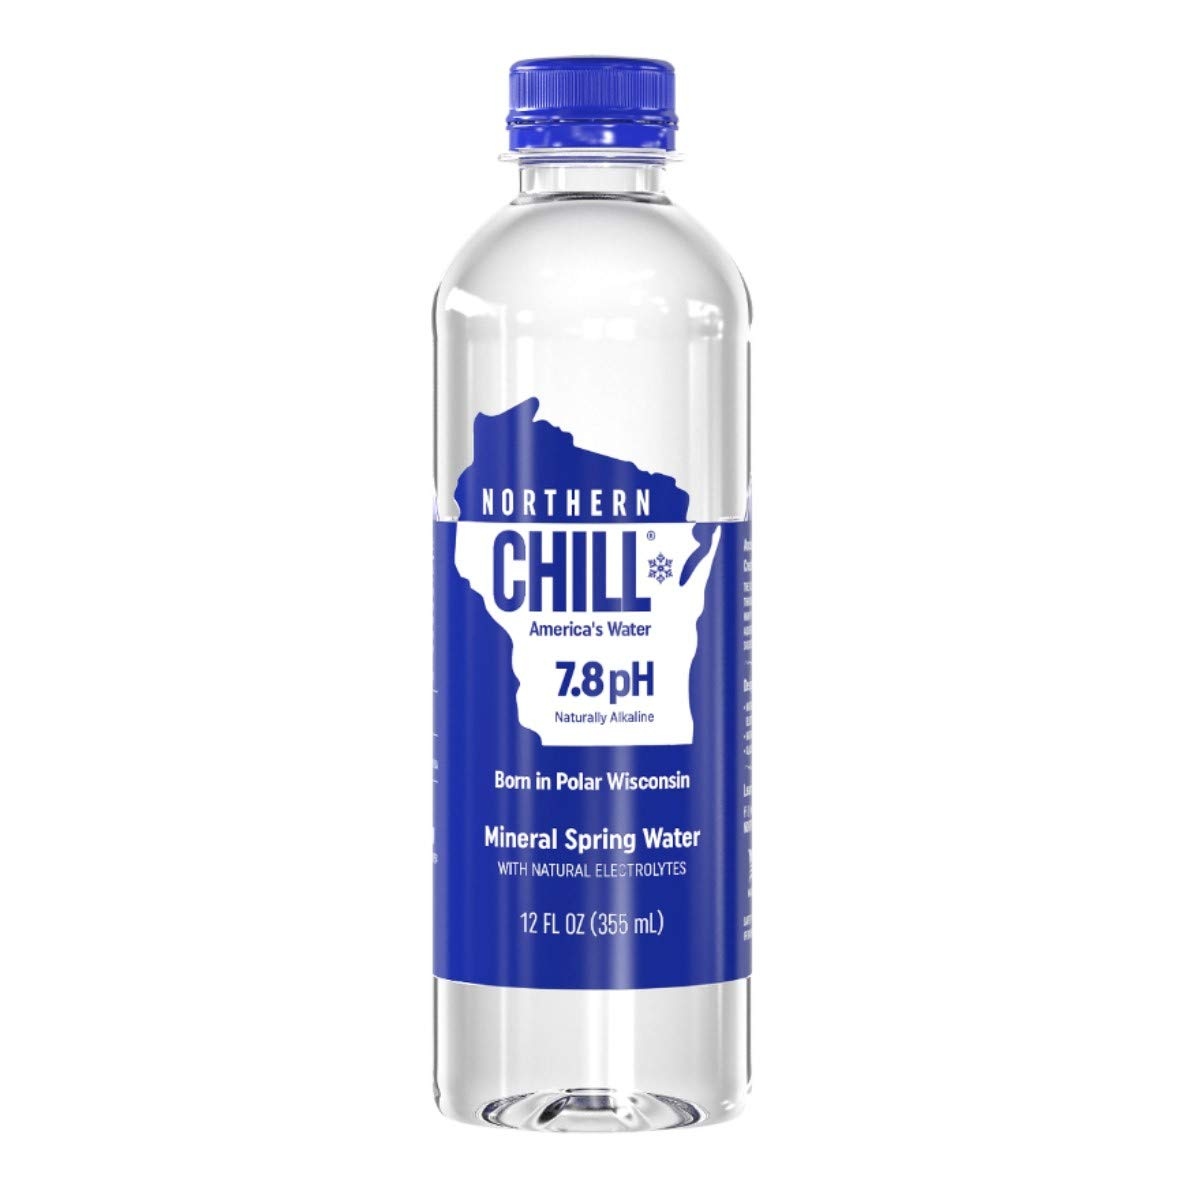 Northern Chill, 12oz, 24 pack, Naturally Alkaline Mineral Spring Water, Naturally Filtered Minerals & Electrolytes, BPA Free PET Bottles, This is America's Water